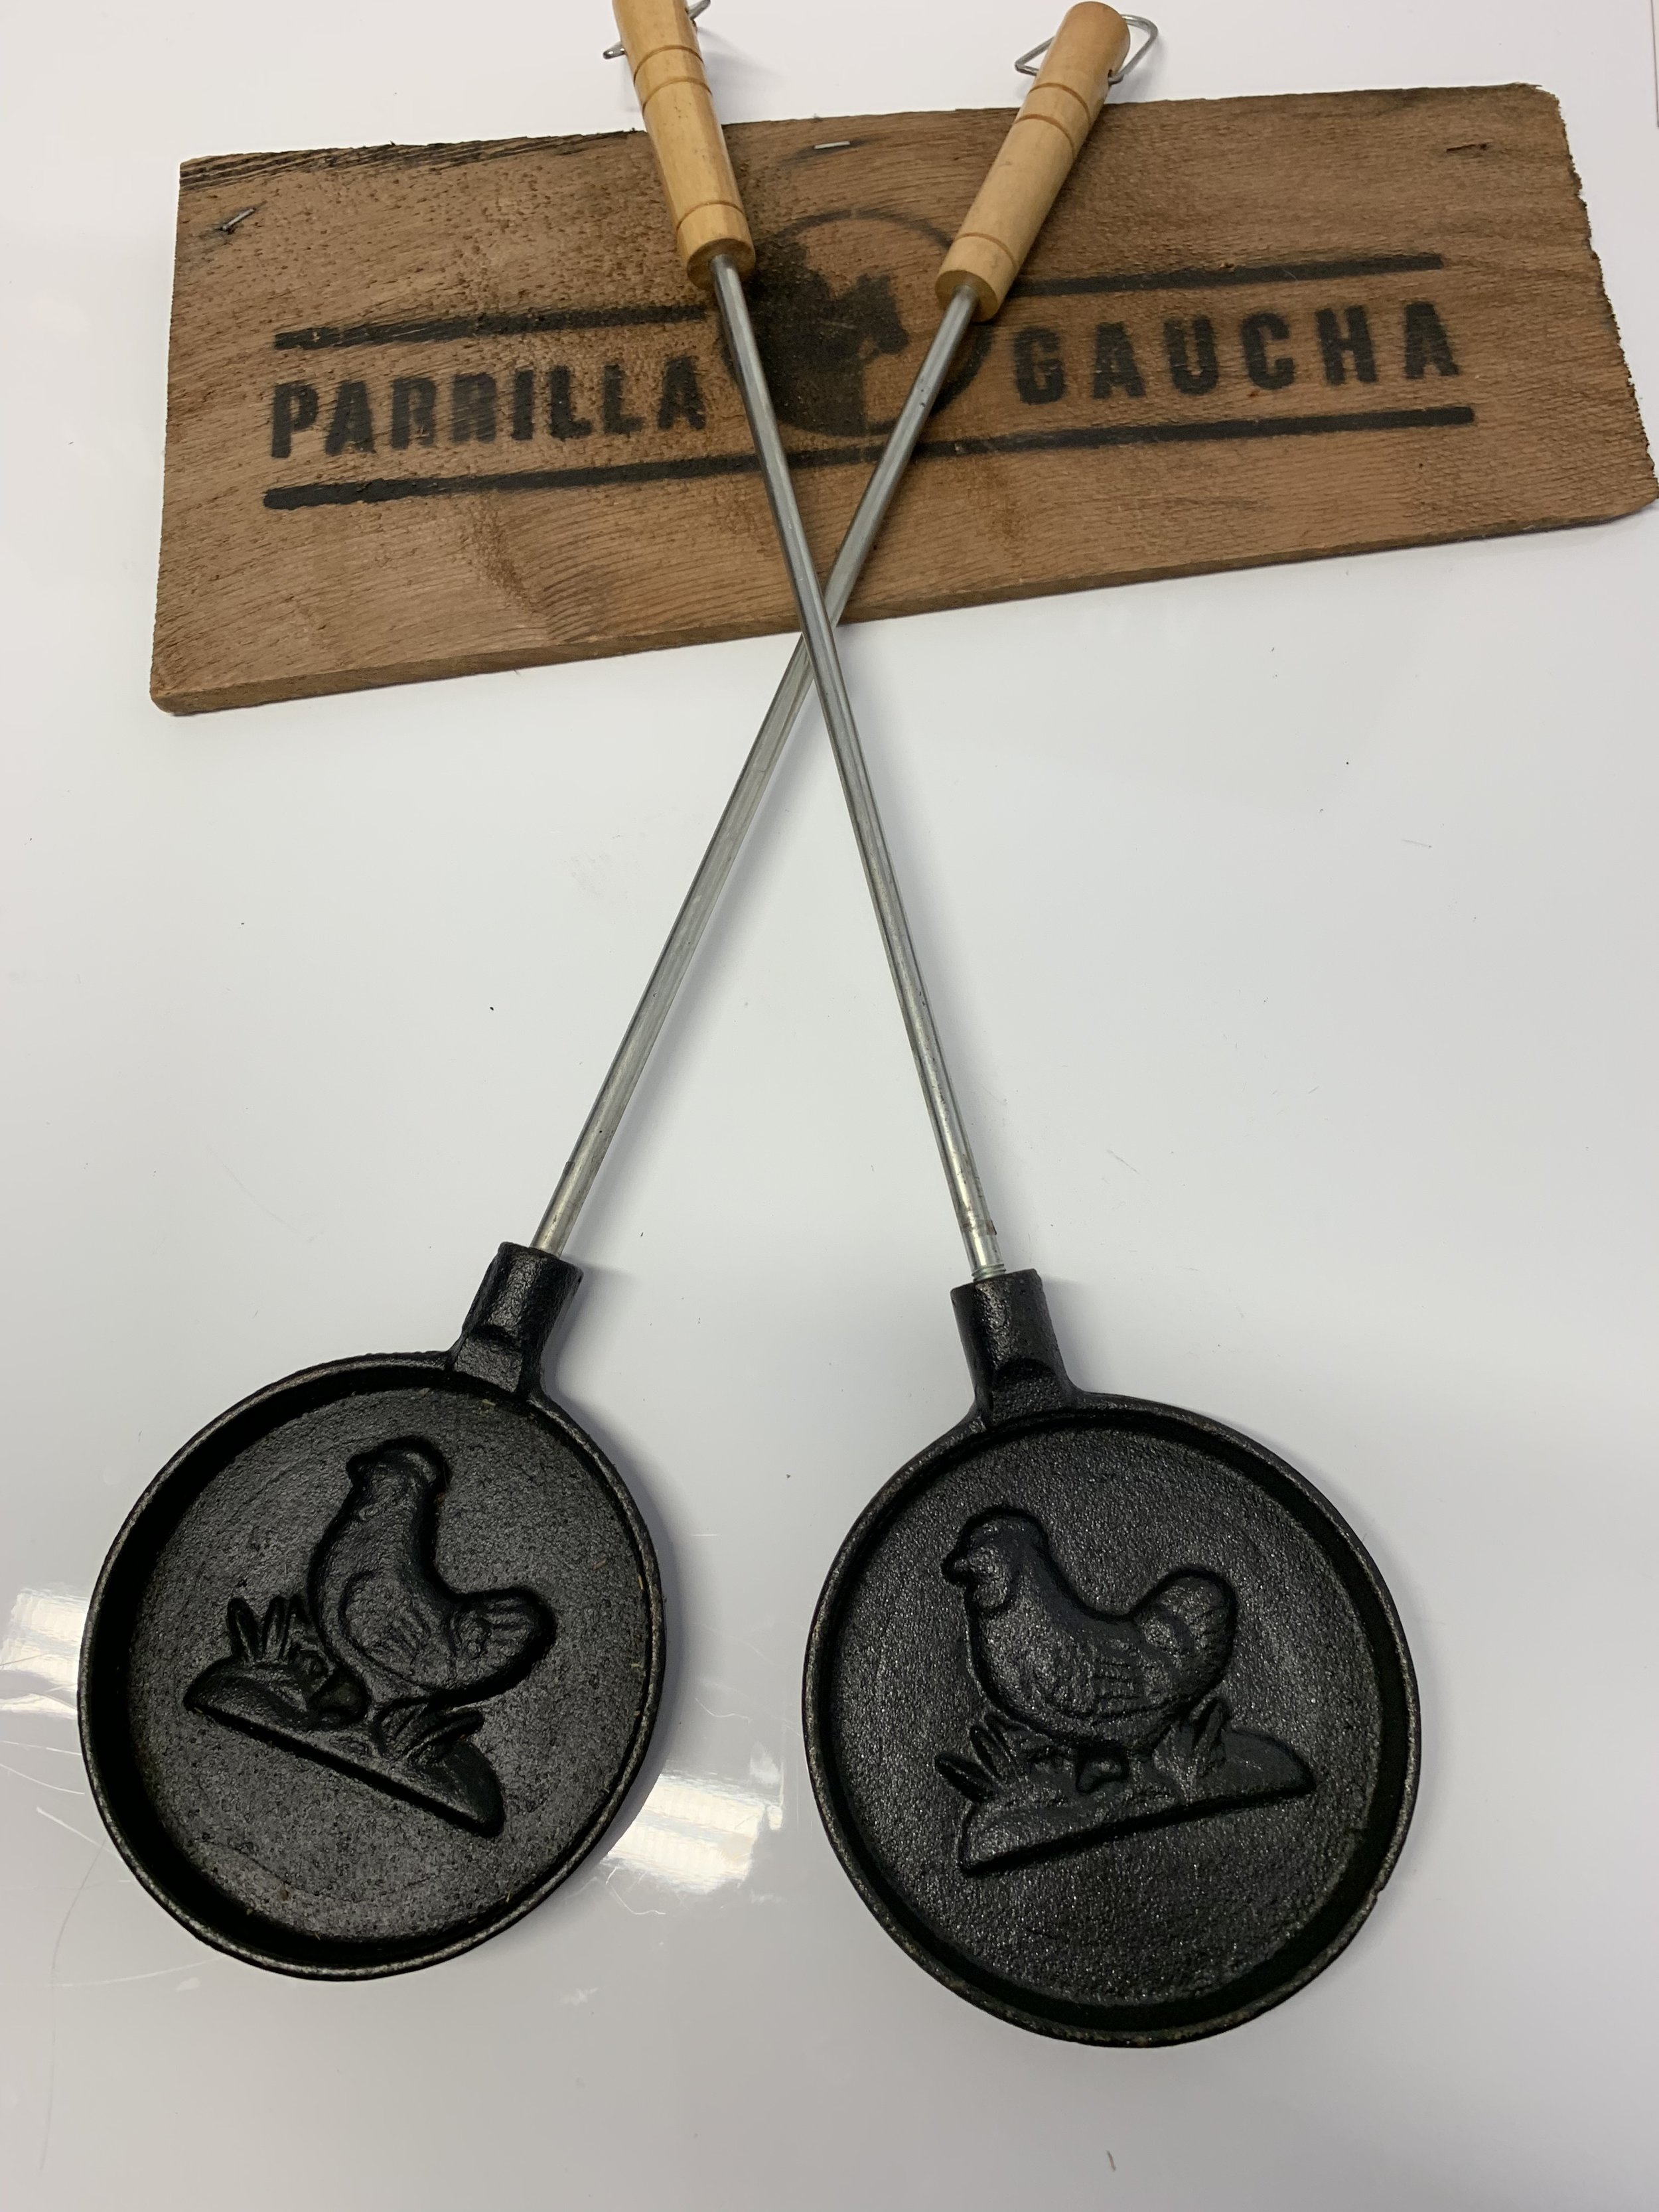 """Provoletera Long Handle£9.95 each or 2 for £12.95 - """"Provoleta"""" is usually served at the beginning of a meal. Chunks of Italian provolone, a drop of olive oil and oregano and the end result is a golden brown shell sheltering gooey cheese goodnesss, the perfect companion for your """"Parrillada"""" or selection of meat on the grill. You can use it on virtually any surface, too, from stove tops and grills to campfires"""